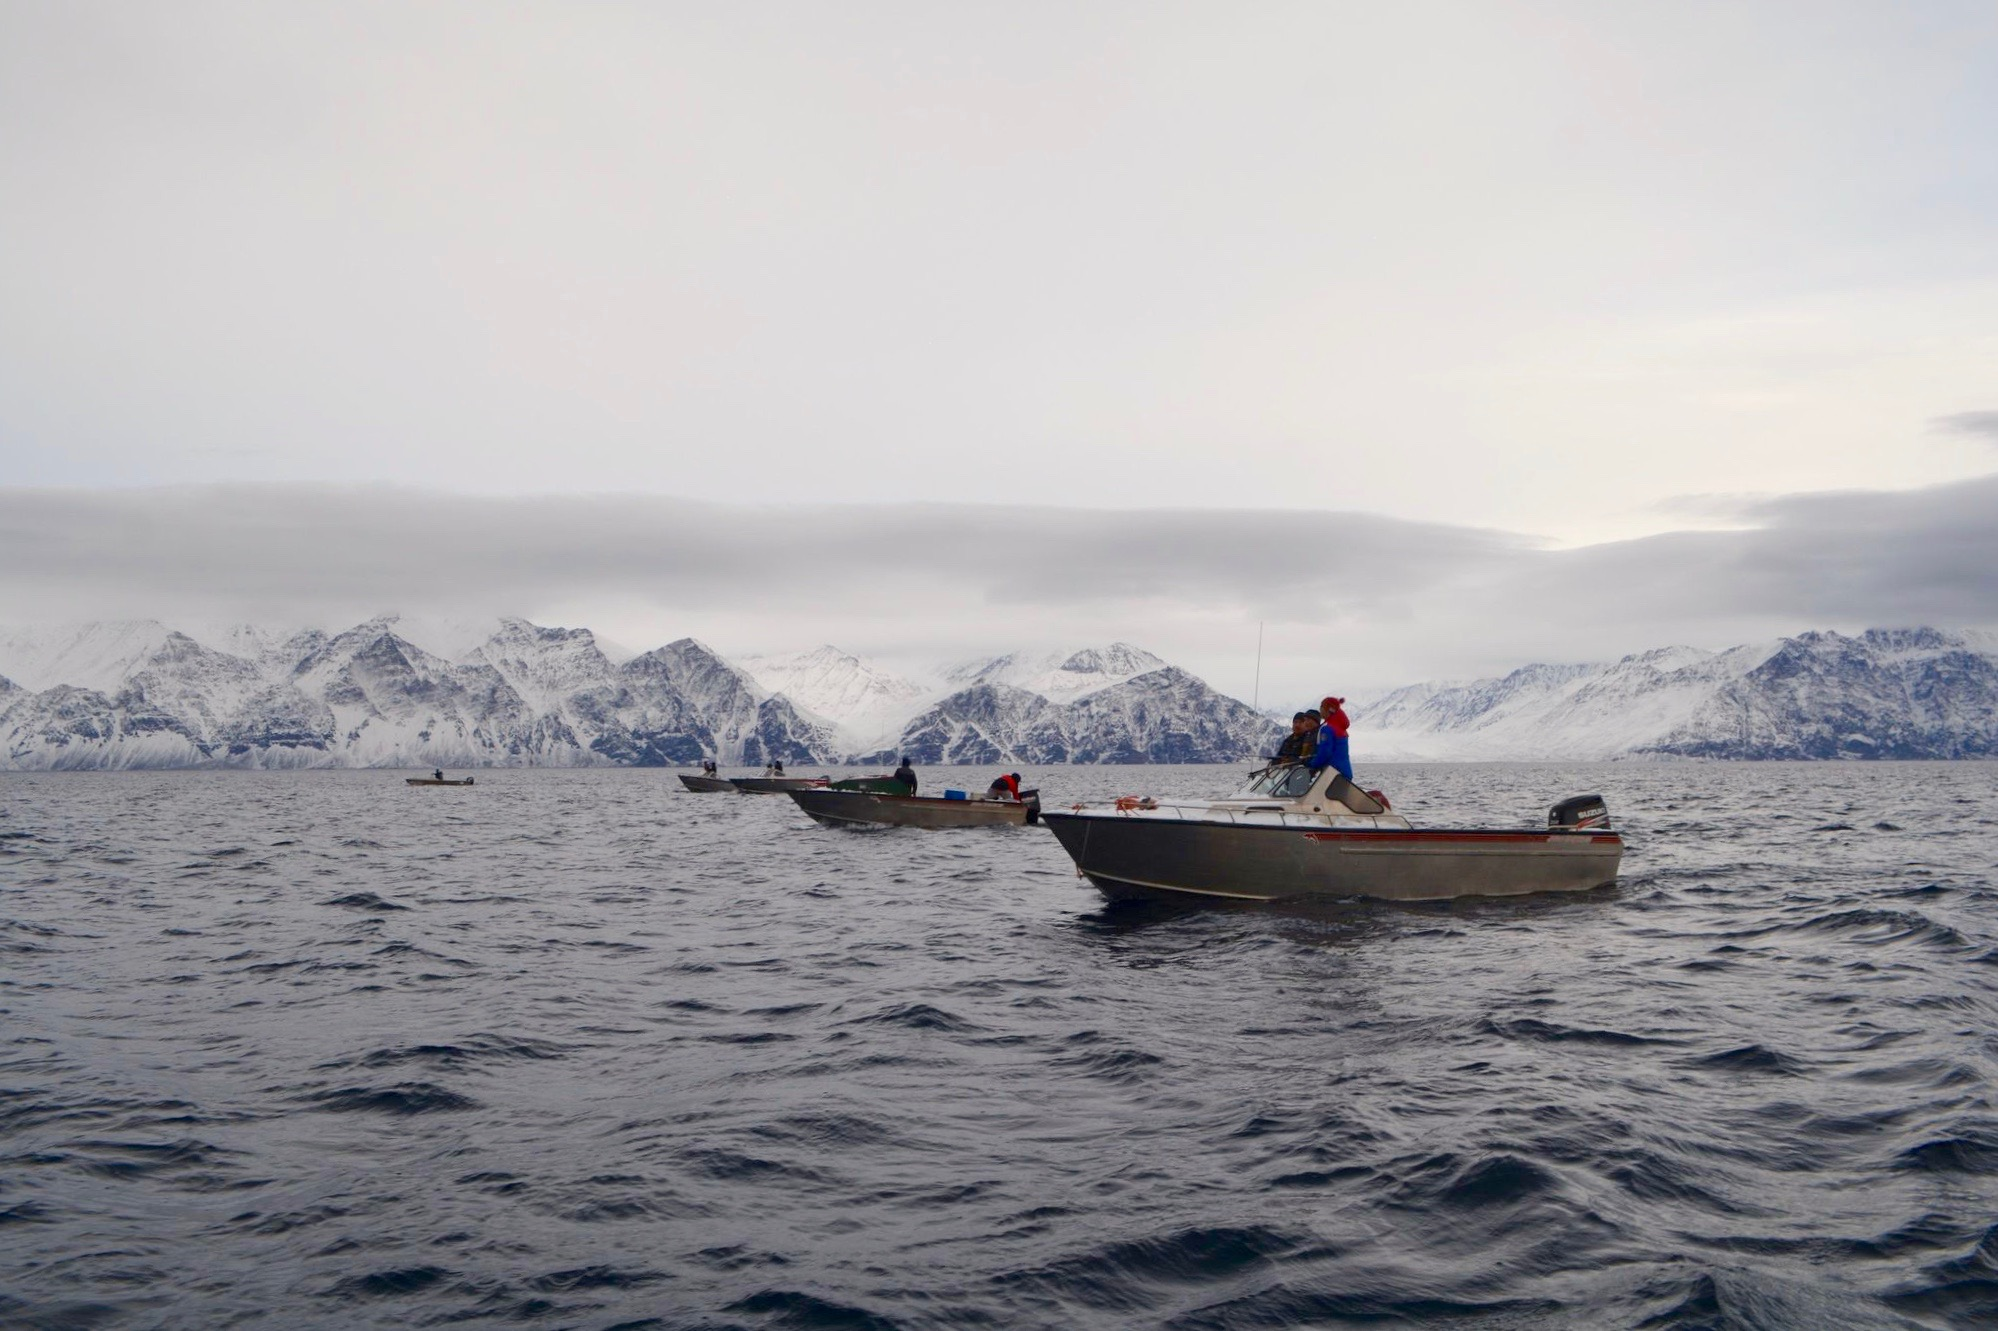 Two dozen boats from Pond Inlet with snow on their bows were on the water Sept. 22 and 23. The group of hunters harvested three or four narwhals during that time, estimated Norman Koonoo, who was on one of the boats. (Photo by Norman Koonoo)